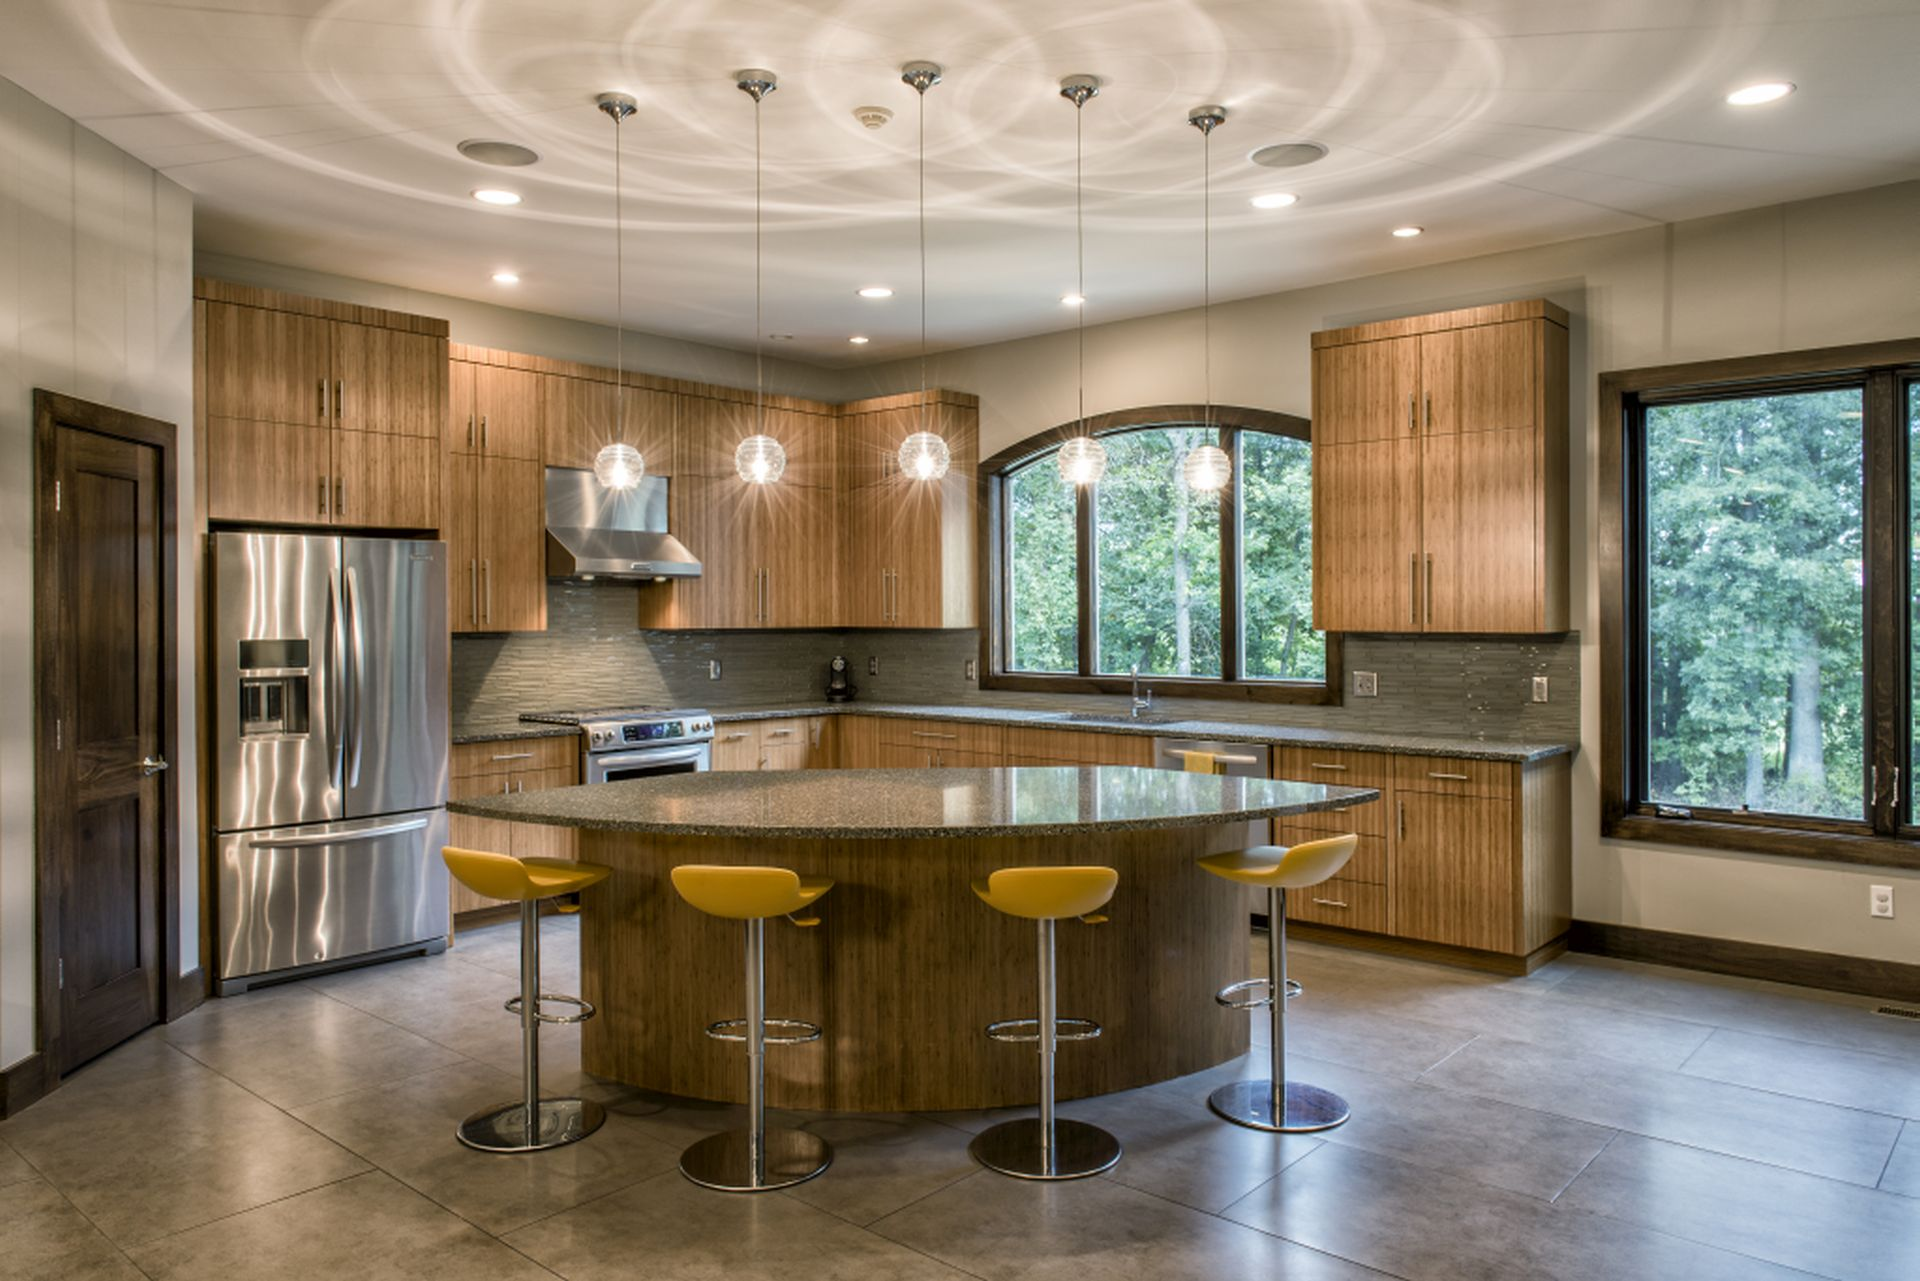 pictures of kitchen cabinets bamboo kitchen 4207